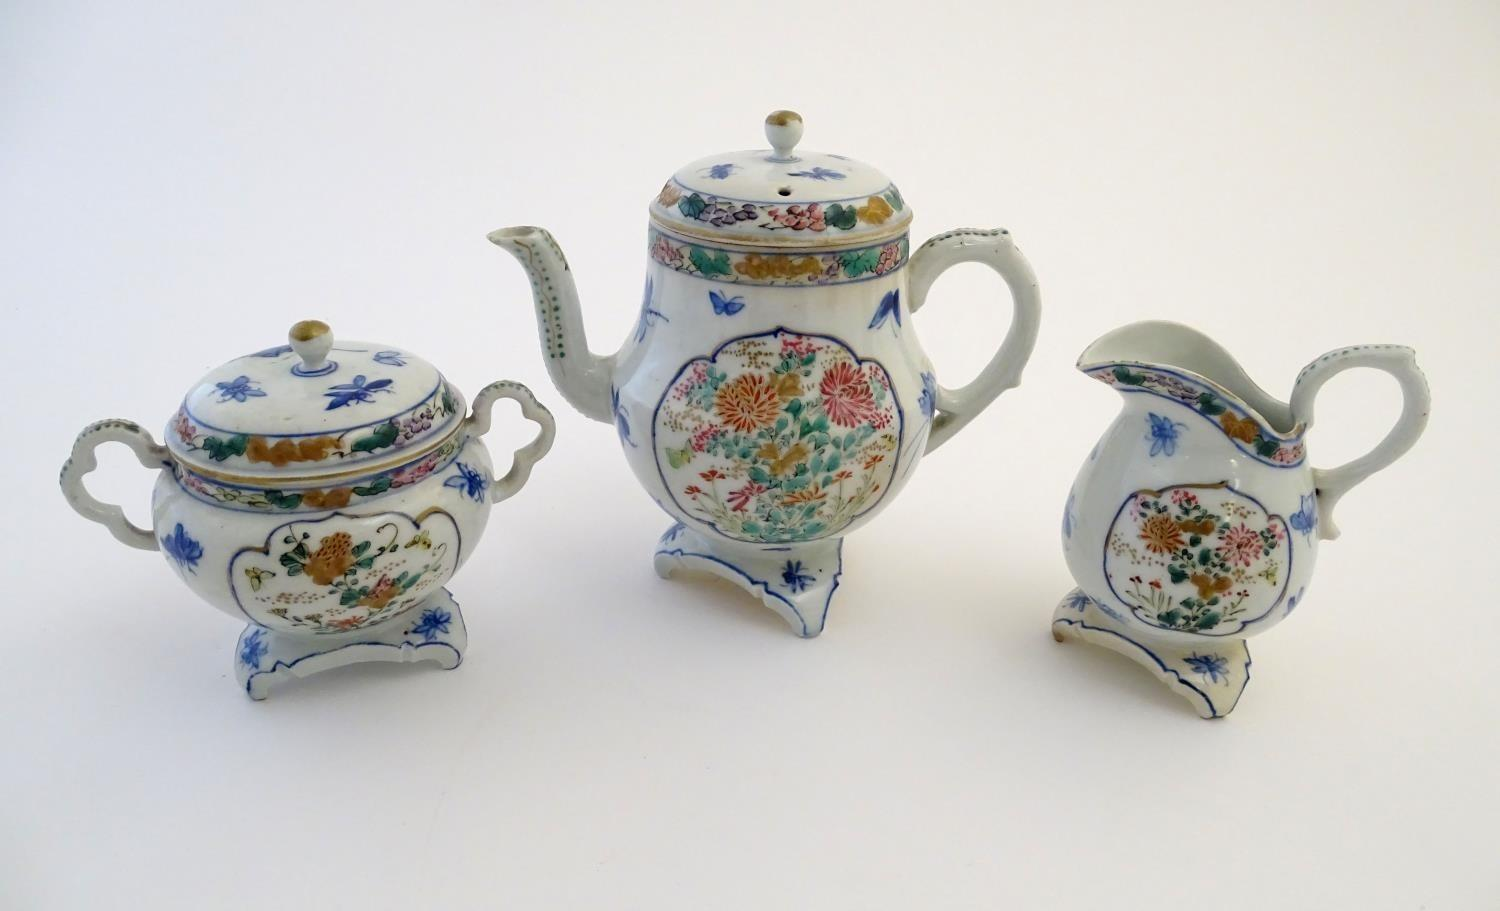 A Japanese teapot, twin handled sugar bowl and milk jug decorated with hand painted insects and